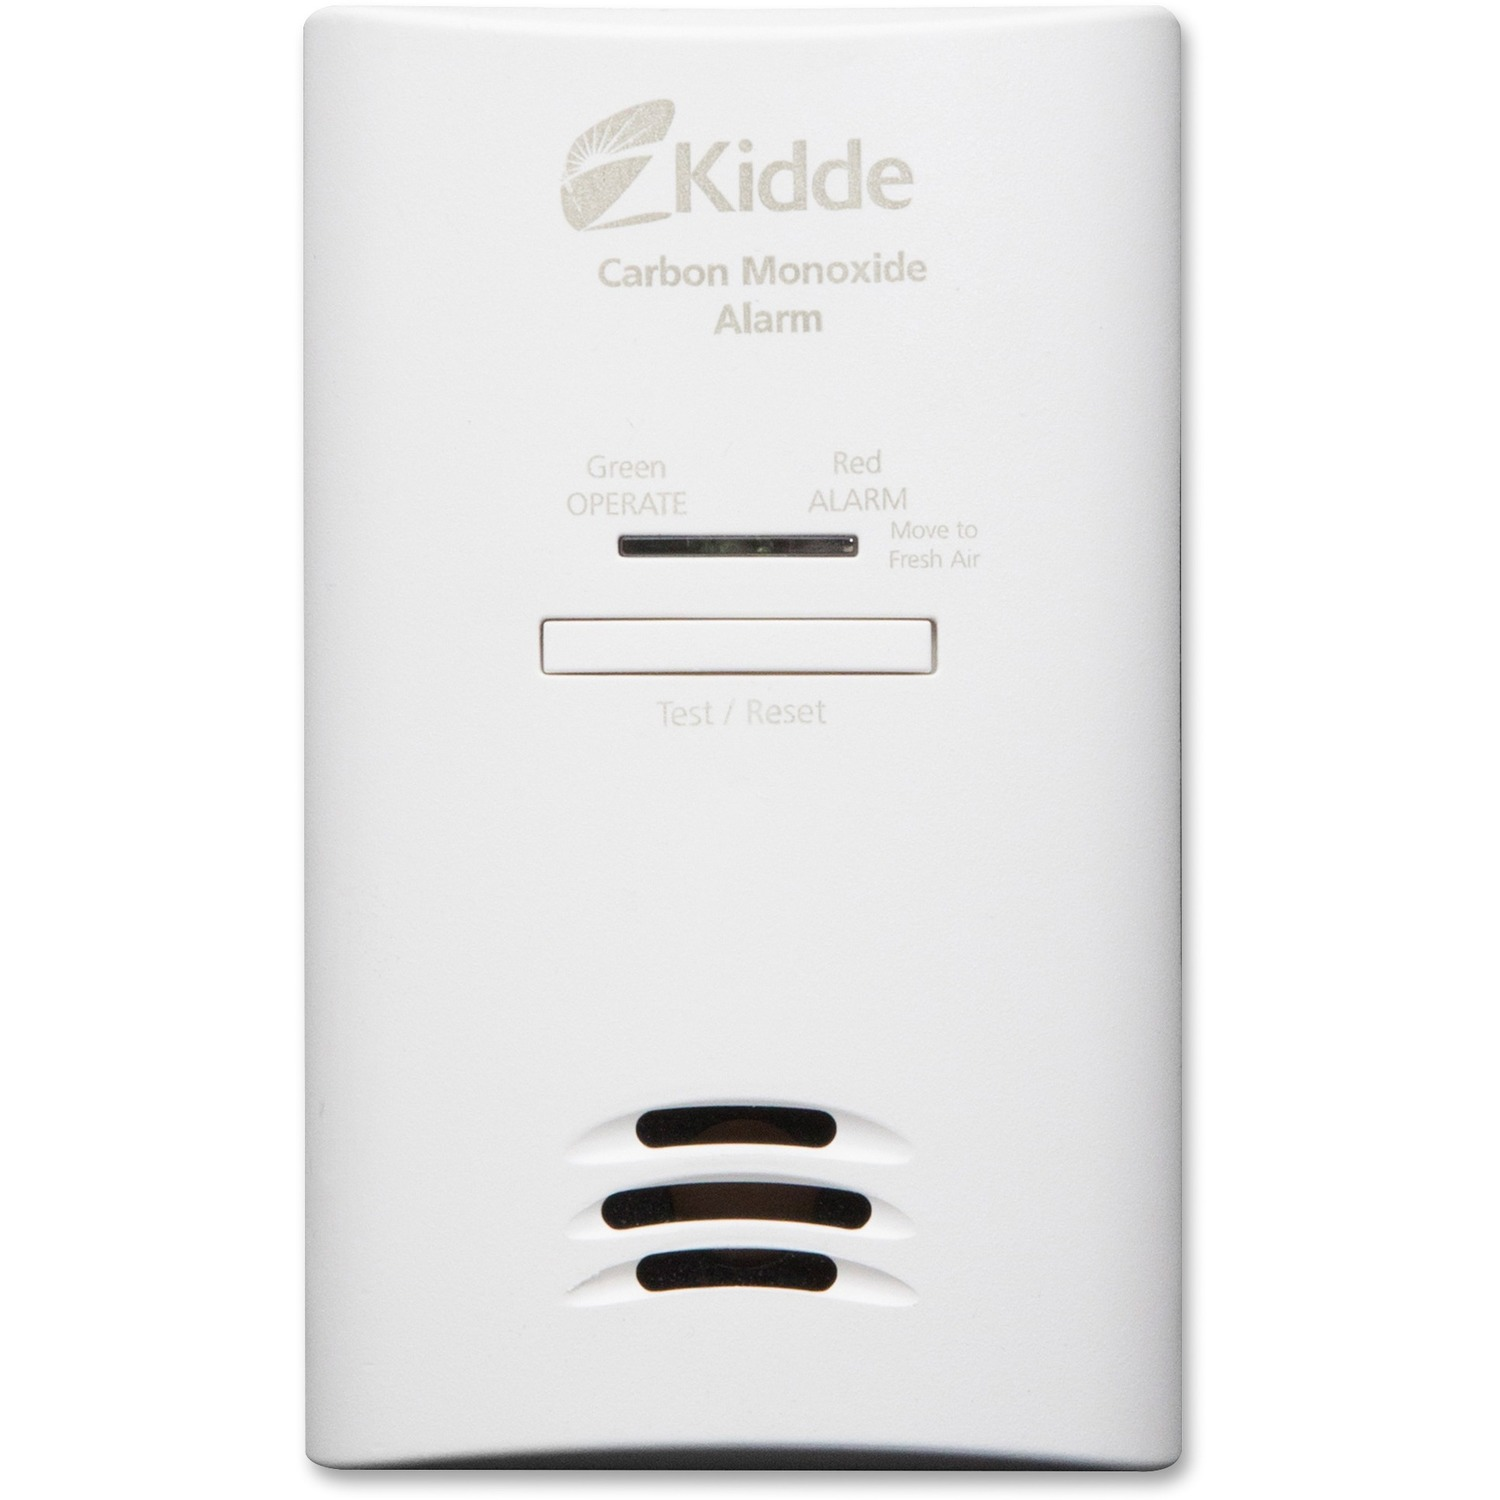 Kidde carbon monoxide alarm ac powered, plug-in with battery backup kn-cob-dp2. 3 Pack.